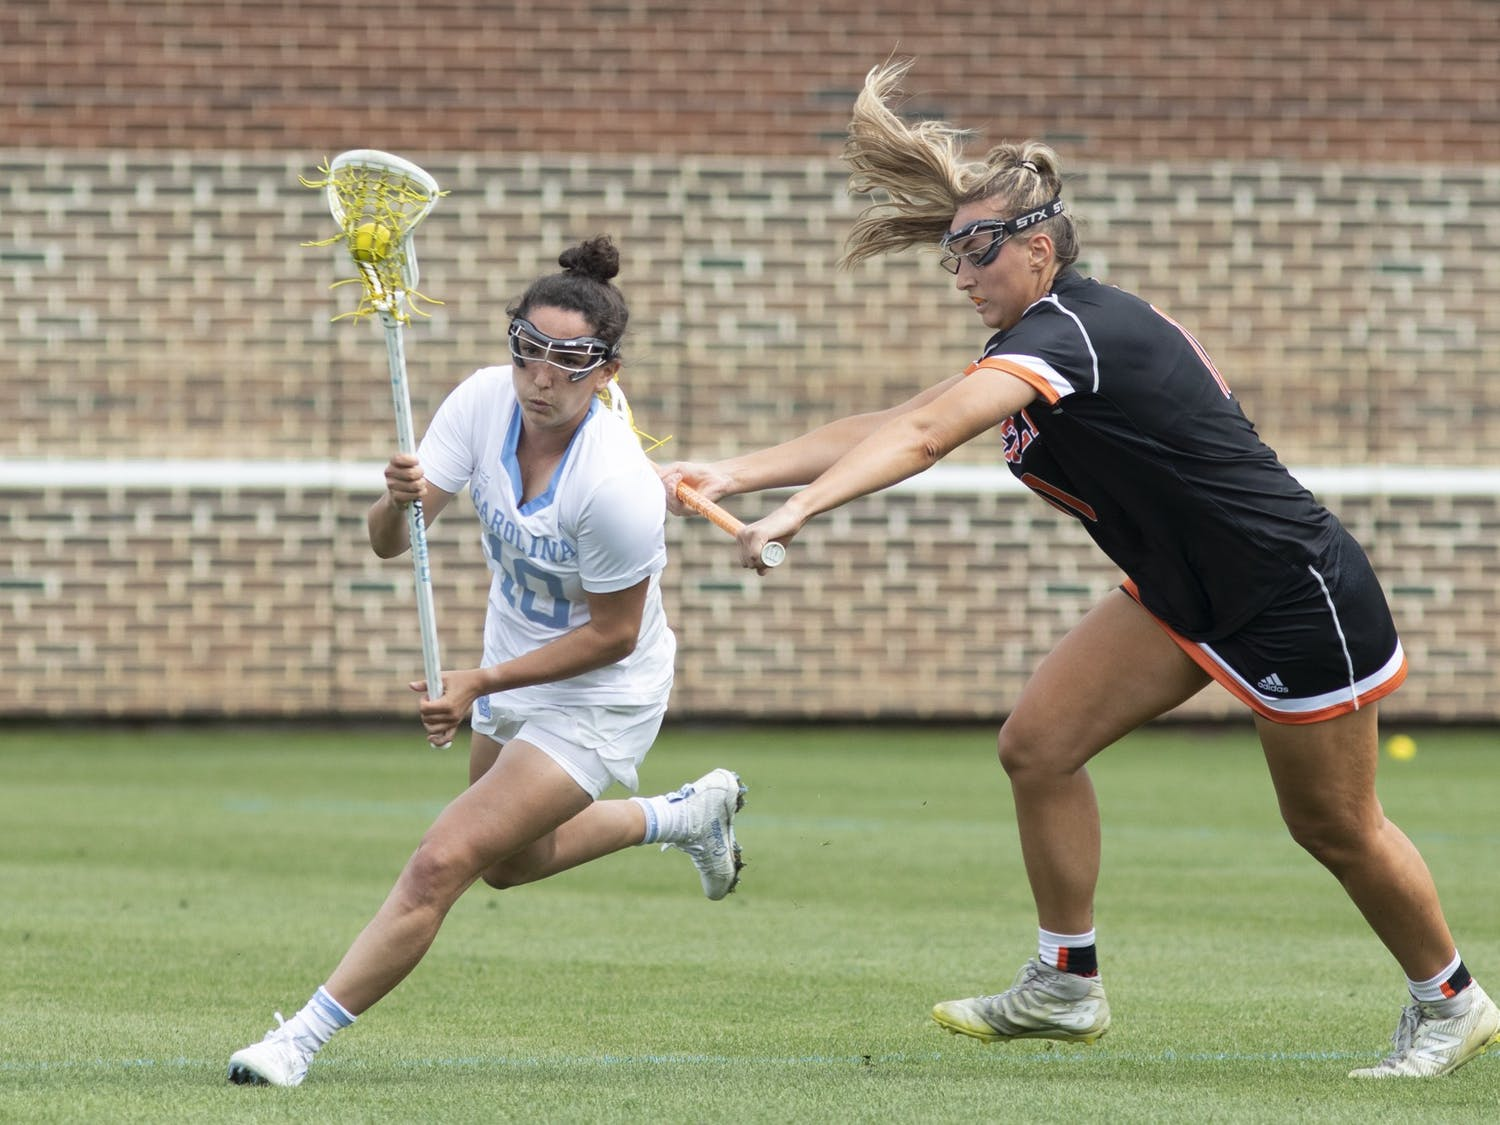 First-year midfielder Alyssa Long (10) runs up the field against Mercer at Dorrance Field on March 27, 2021. UNC beat Mercer 18-5.